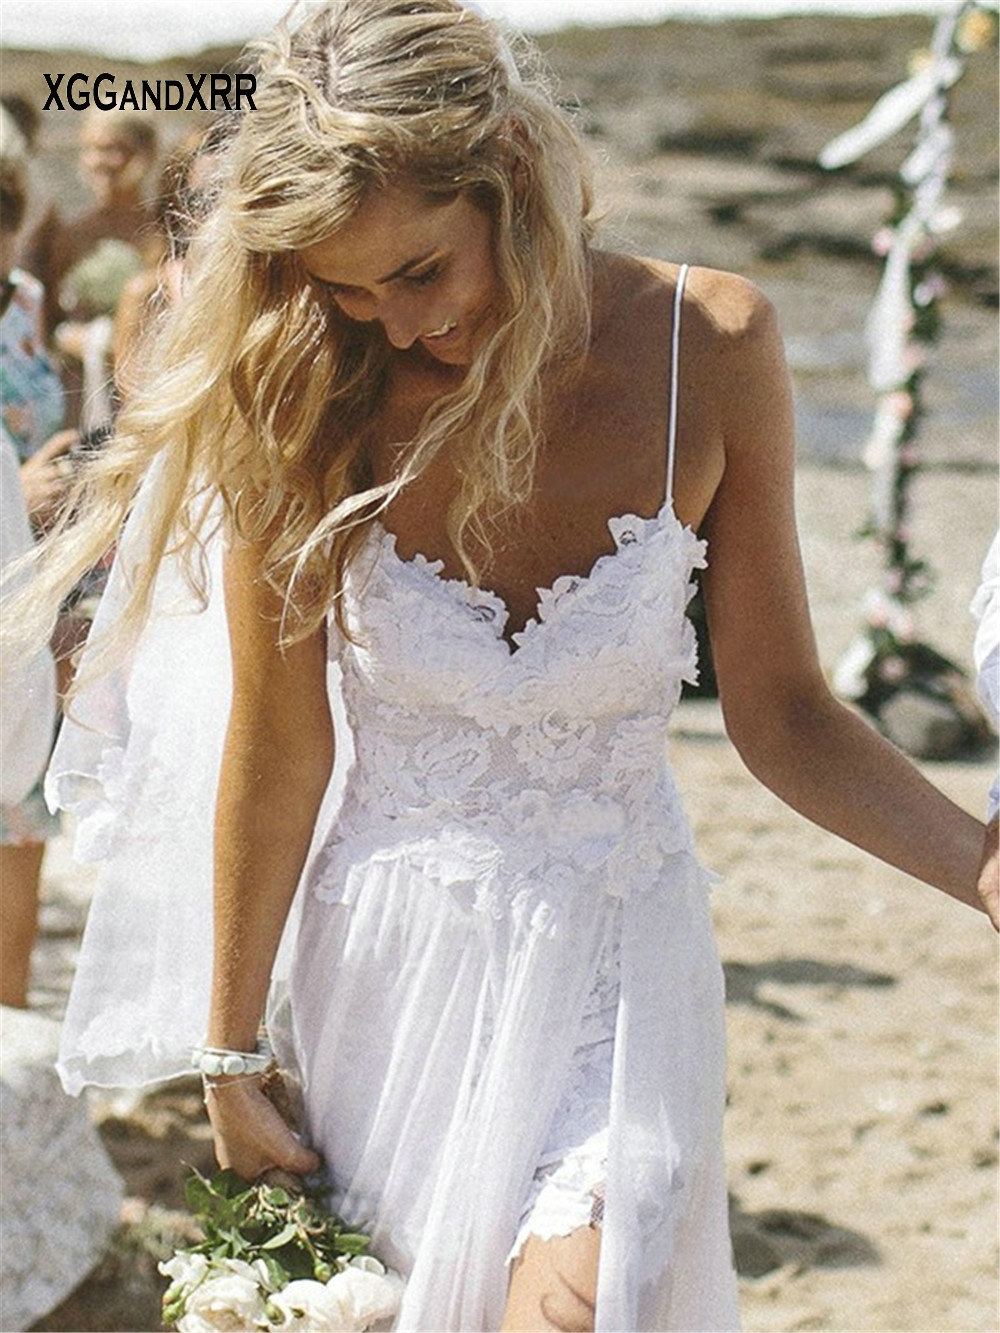 Spaghetti Straps White Chiffon Front Slit Beach Wedding Dress with Lace Elegant Open Back Bridal Dress Boho Wedding Dress